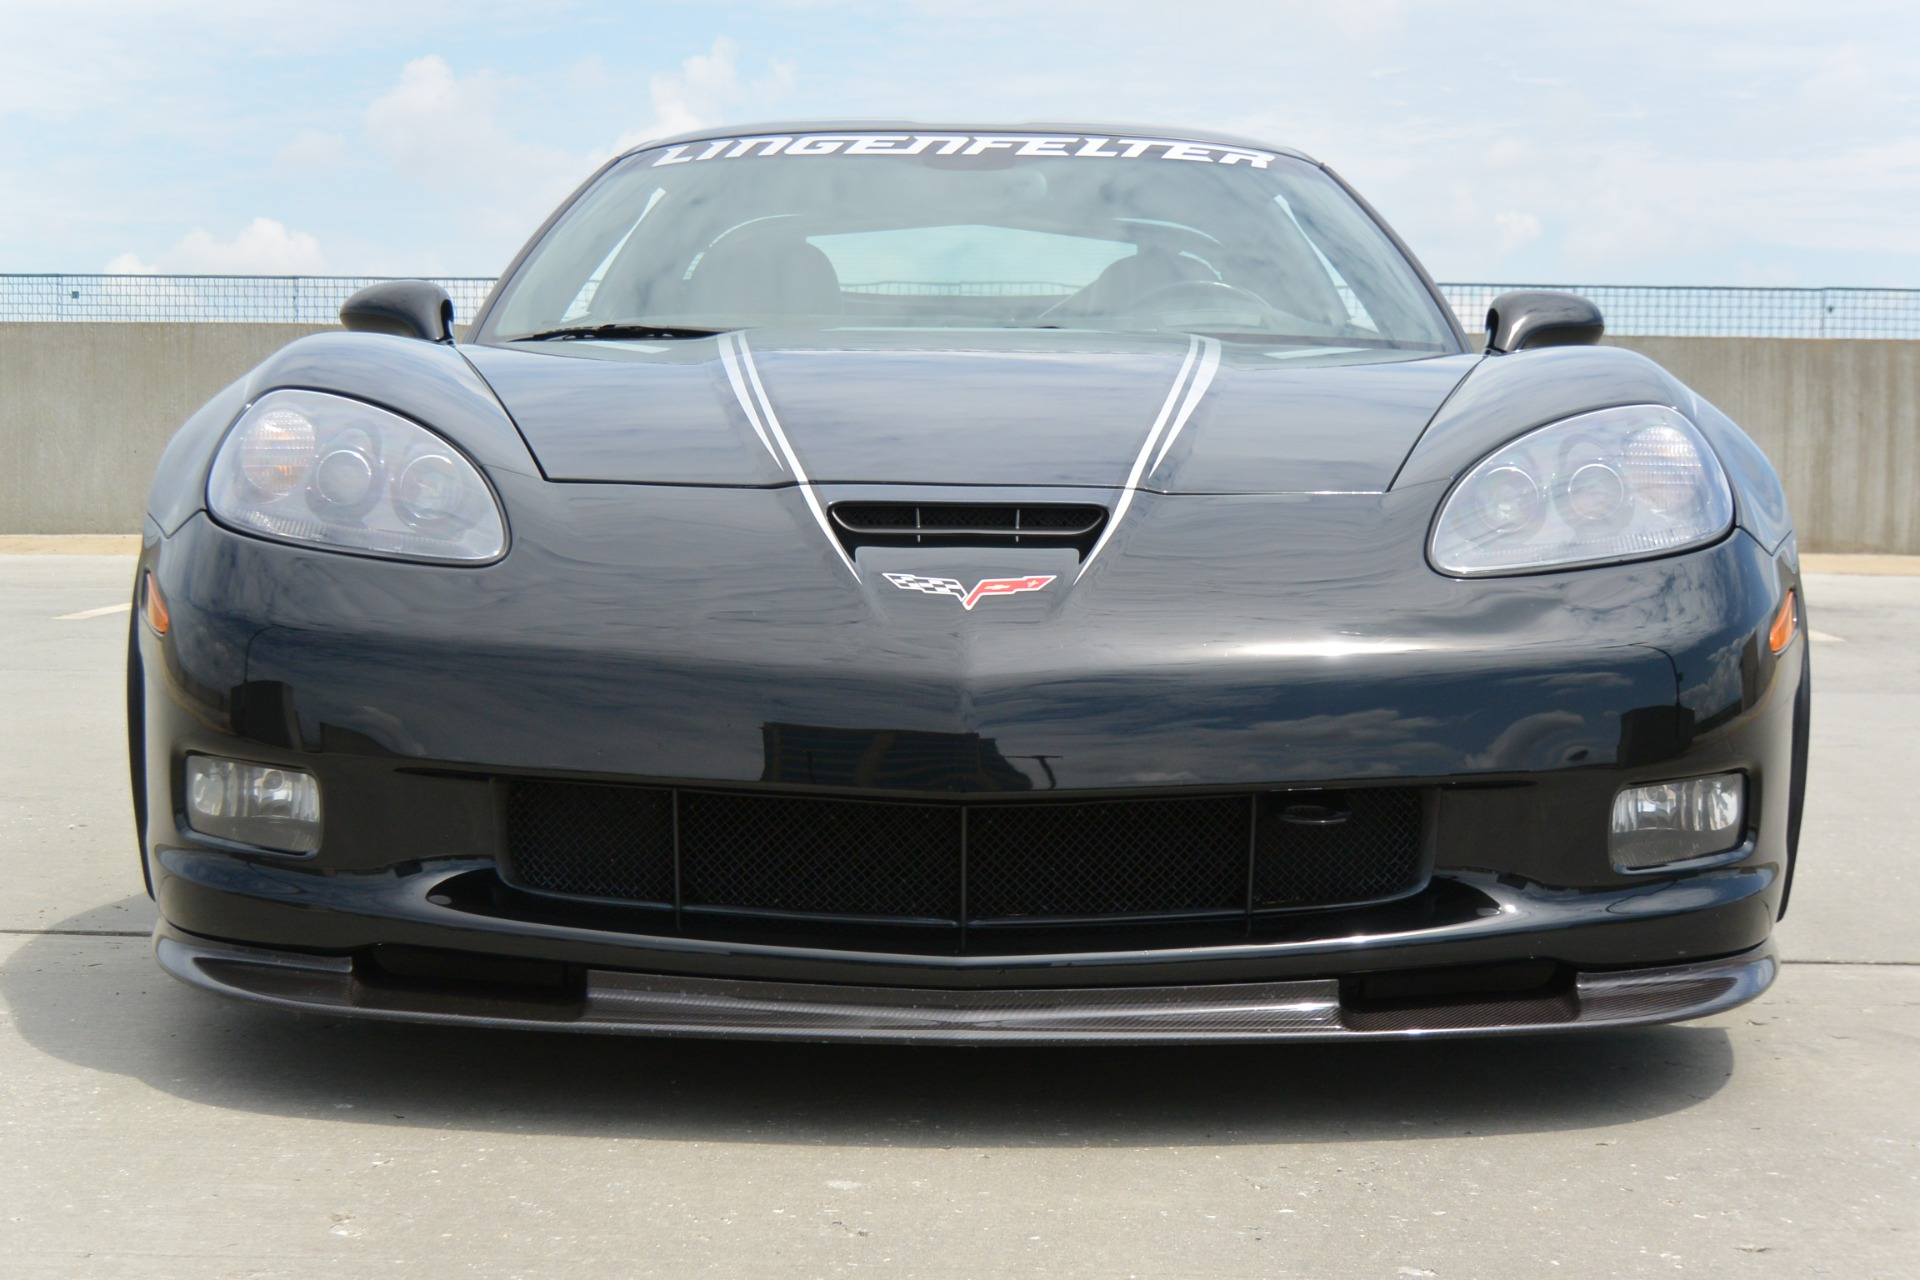 2007 Chevrolet Corvette Z06 Lingenfelter Stock 75108246 For Sale C6 Painted Fuse Box Cover Used